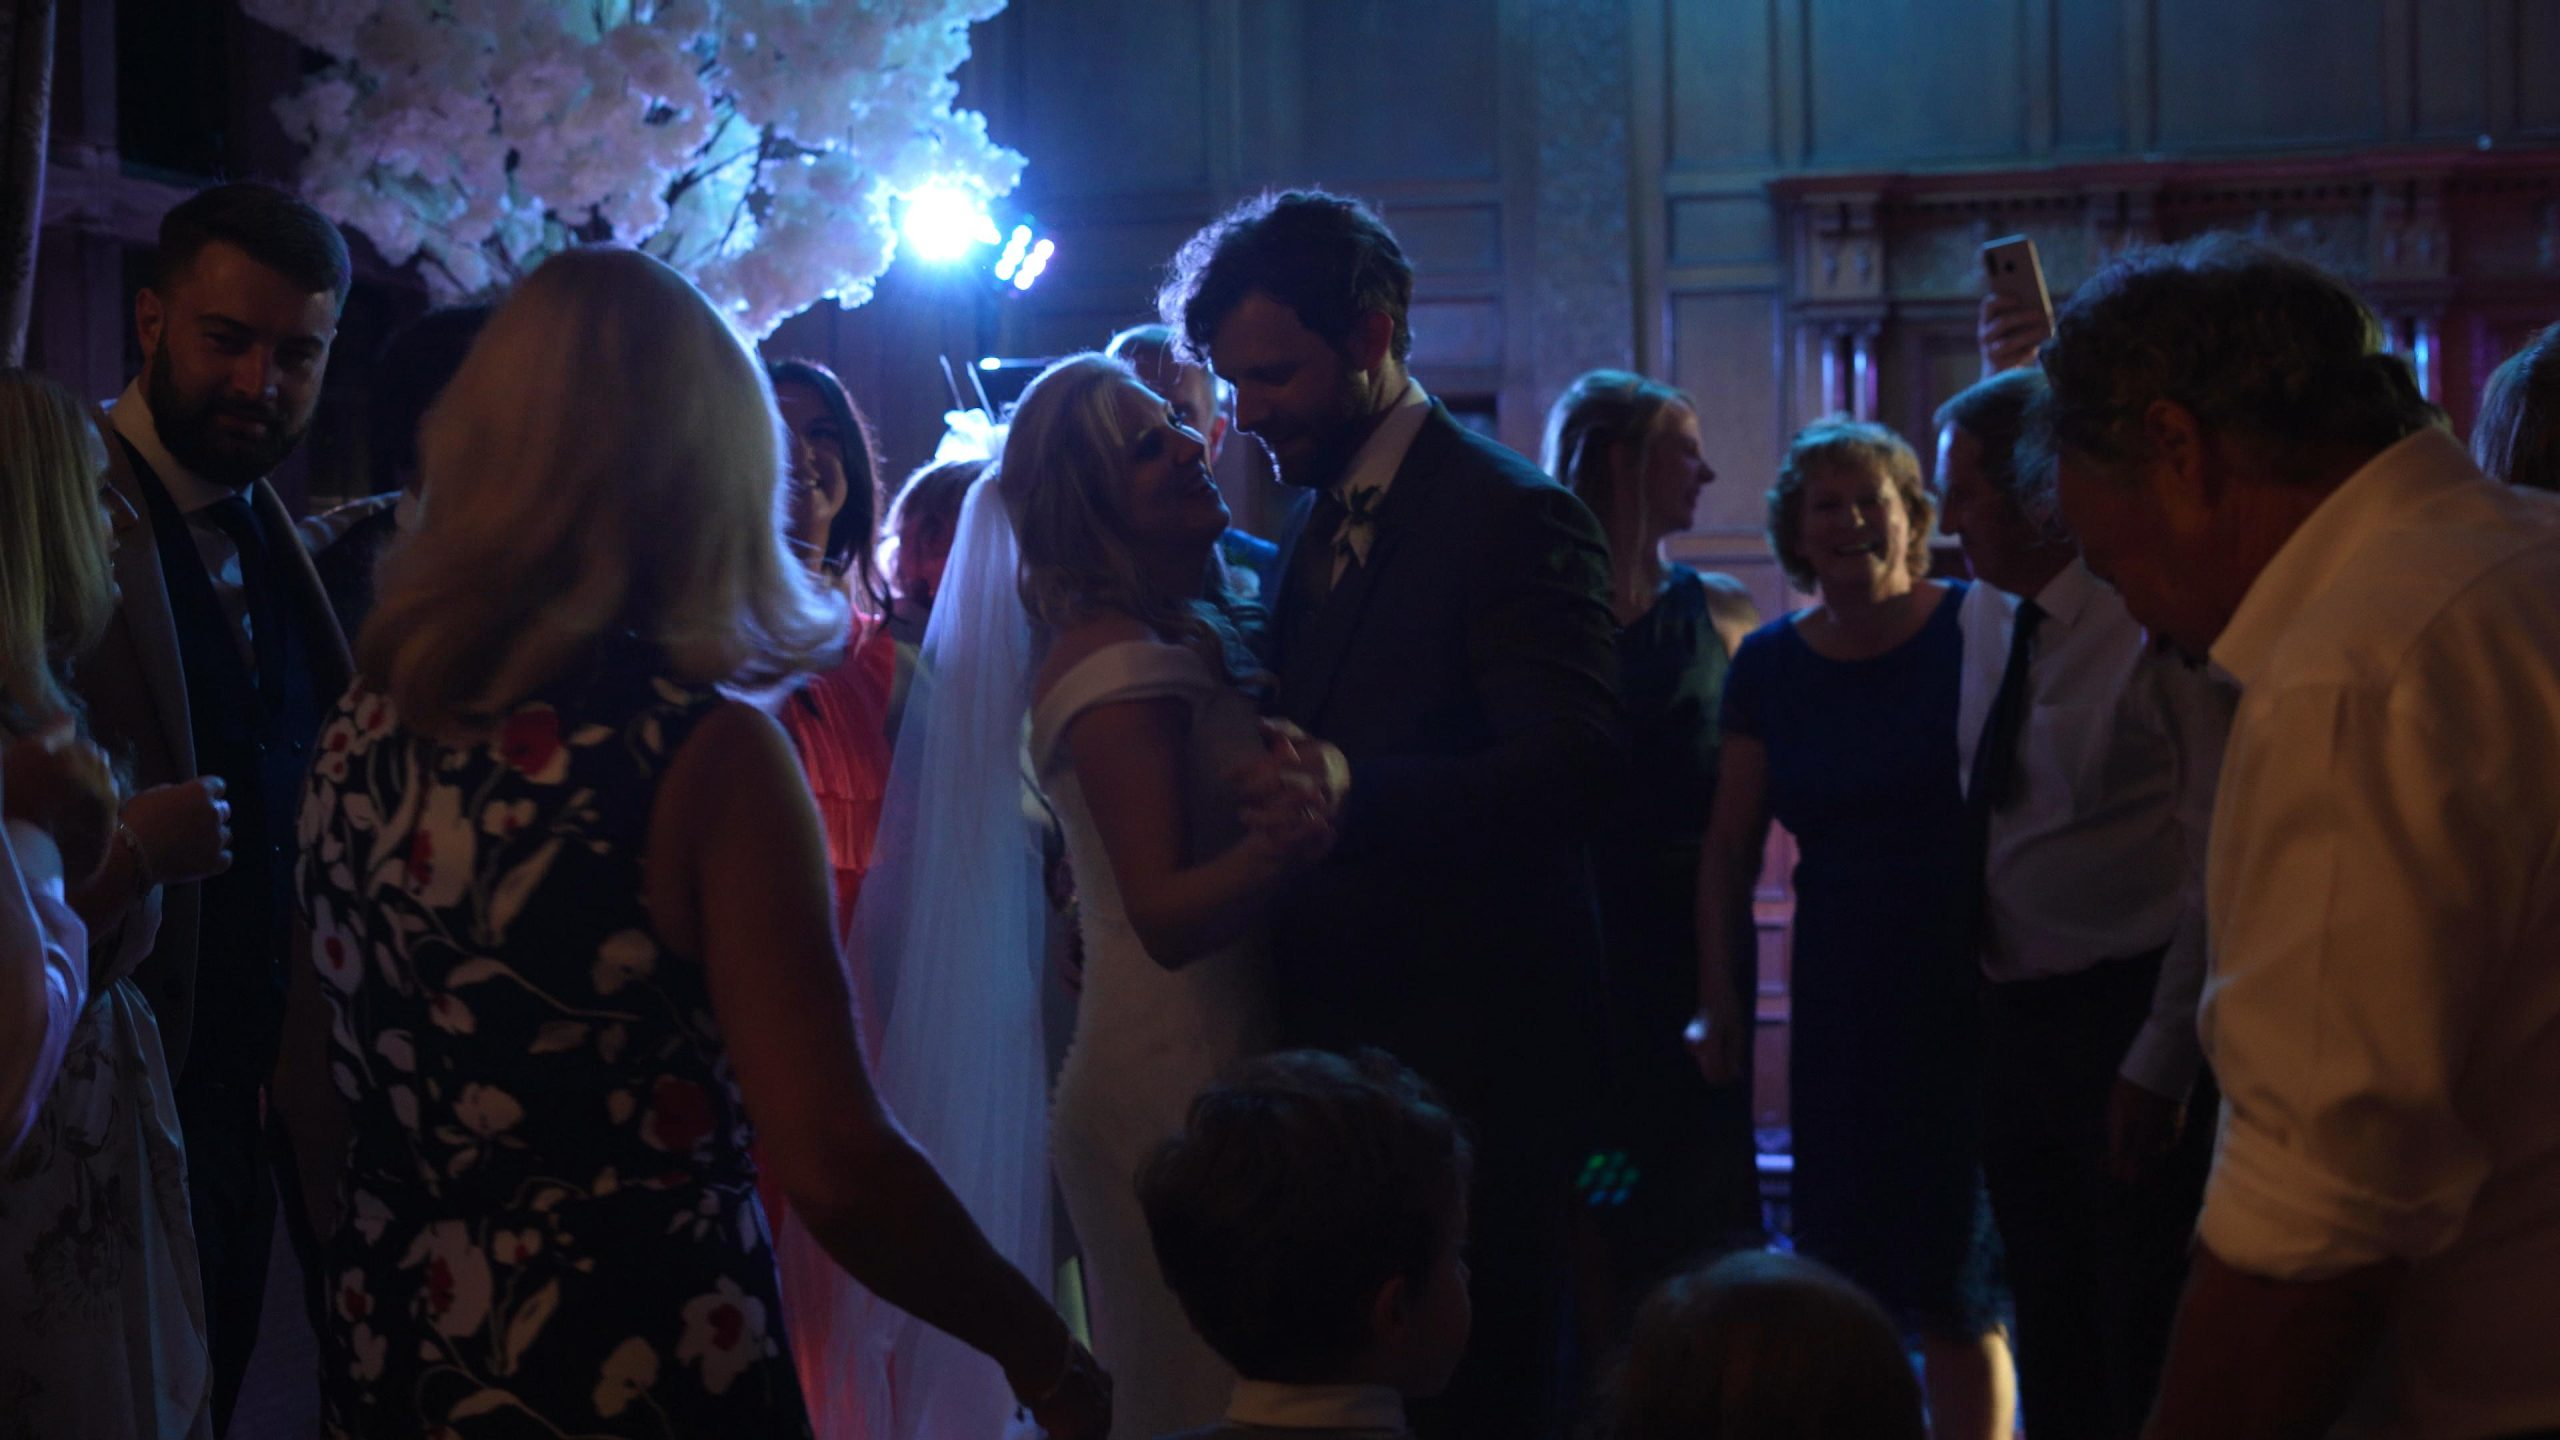 guests crowd around the couple on the dancefloor